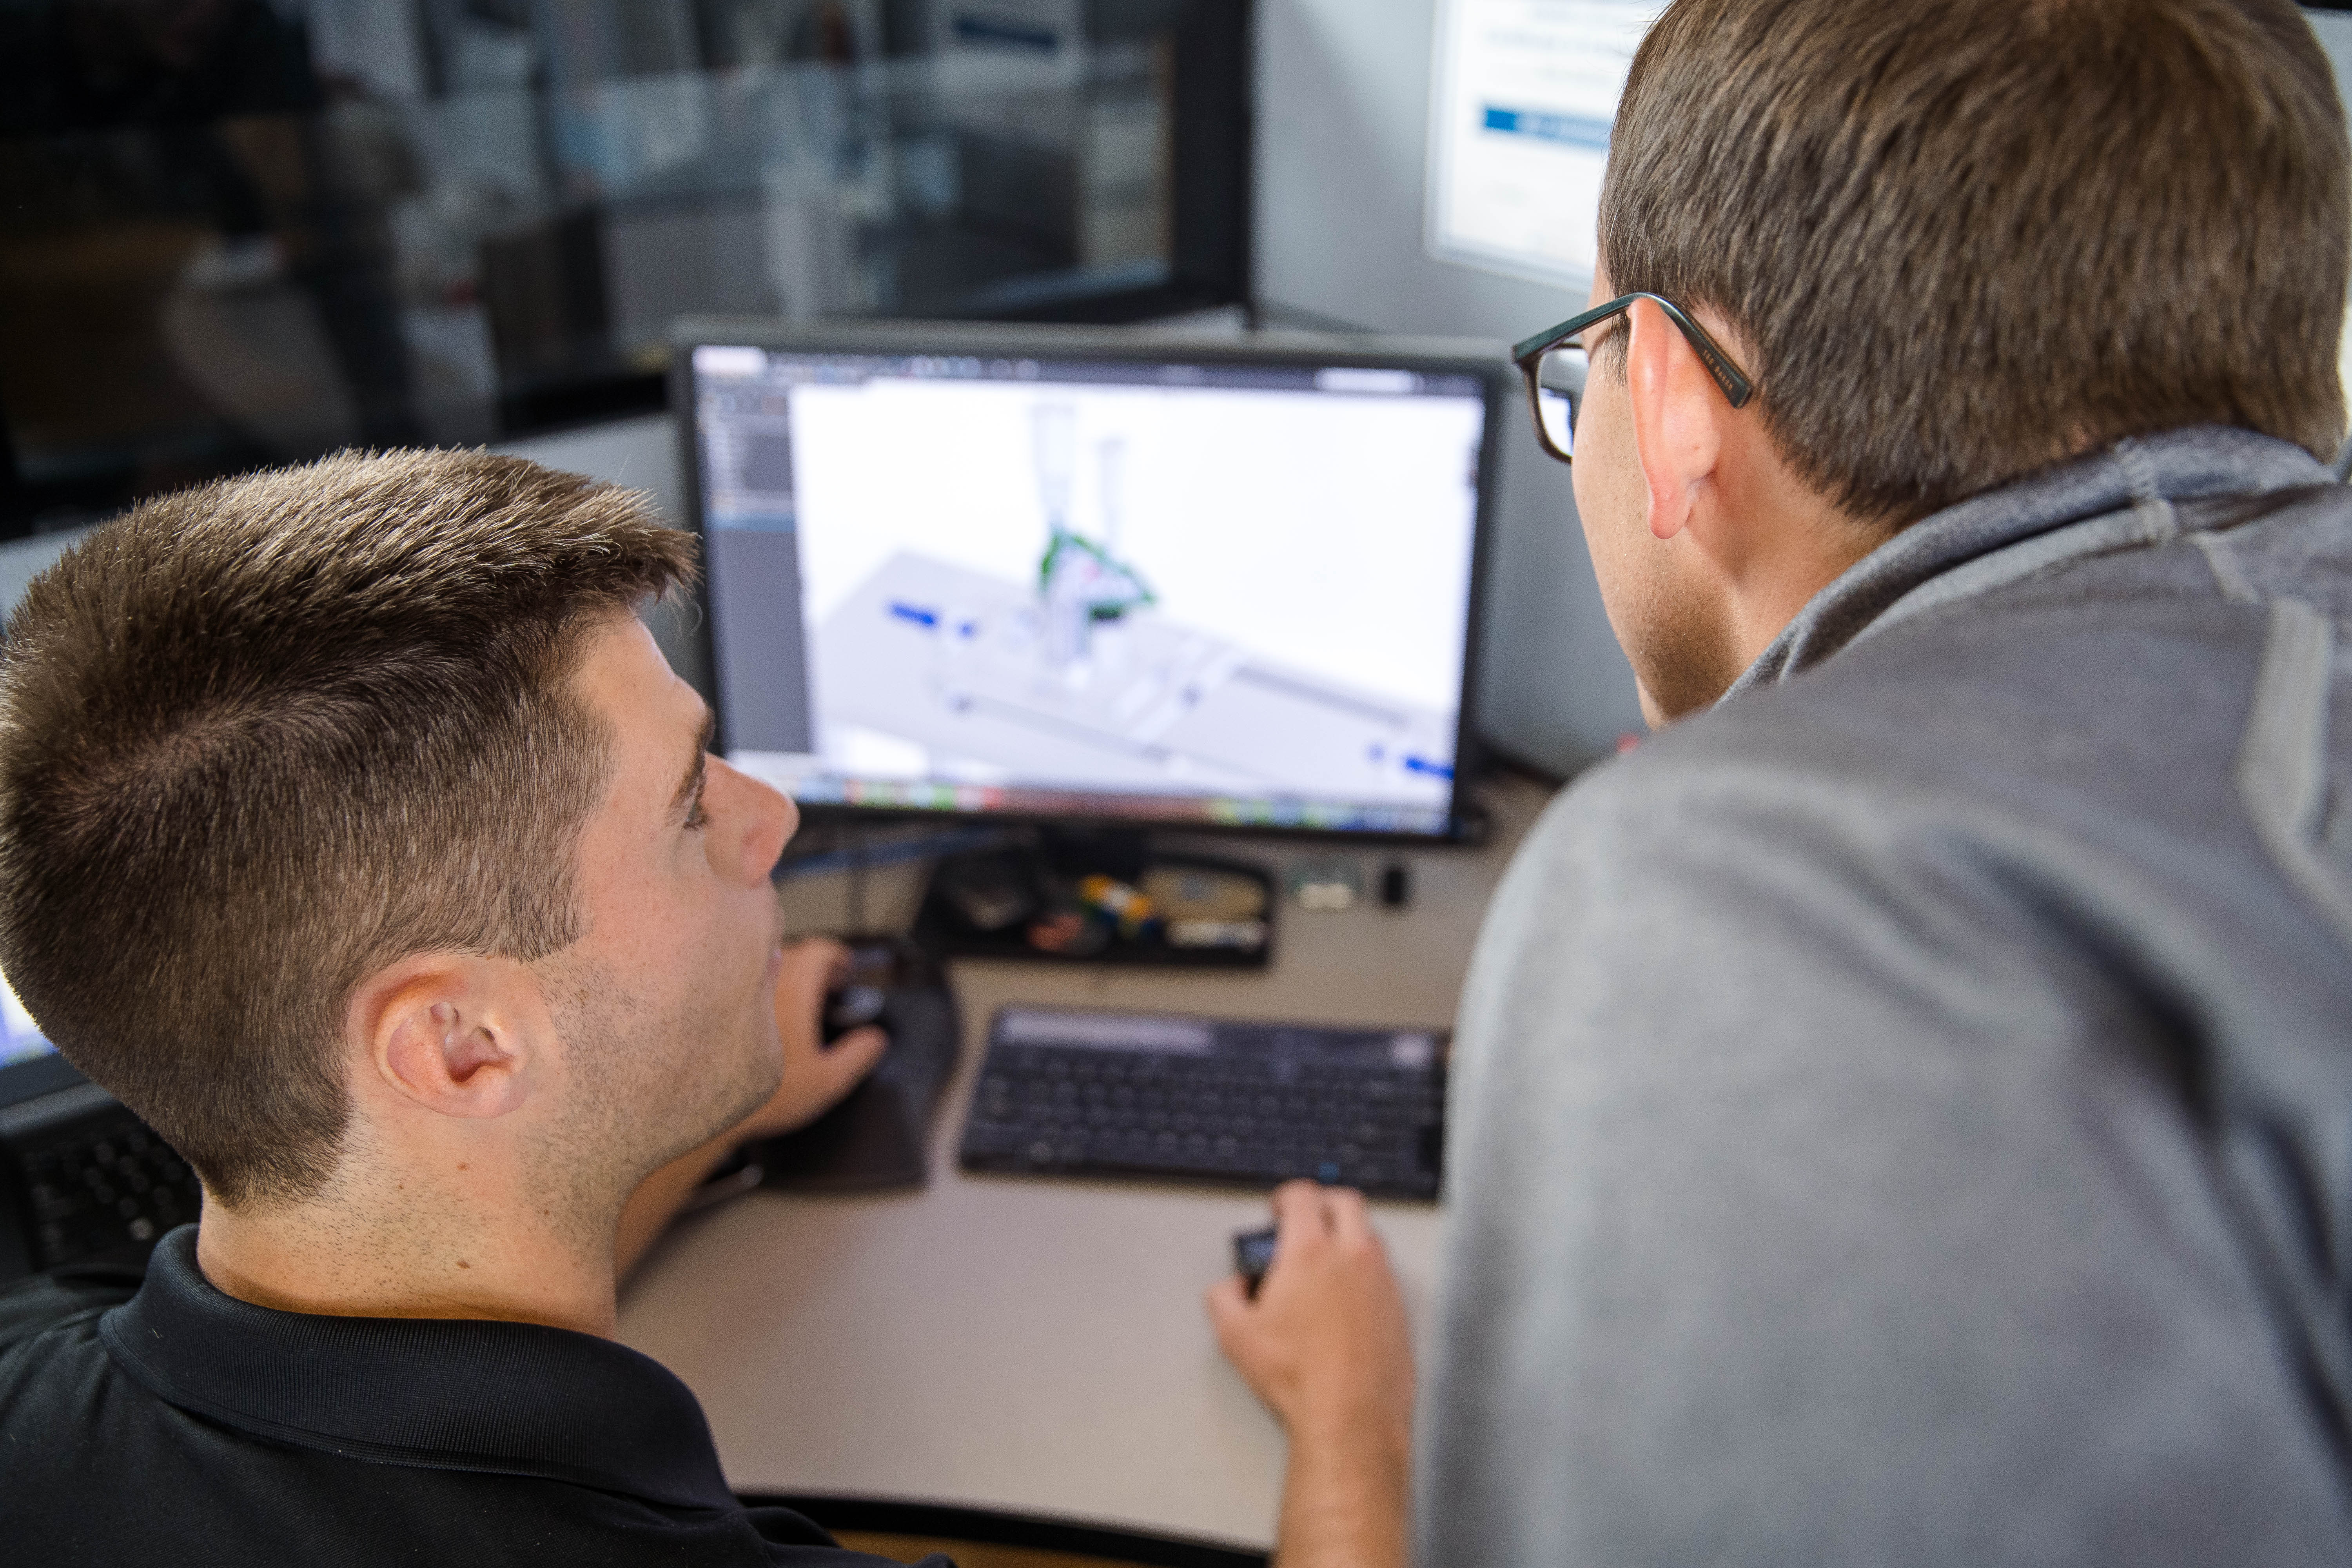 Two engineers looking at a CAD model on computer